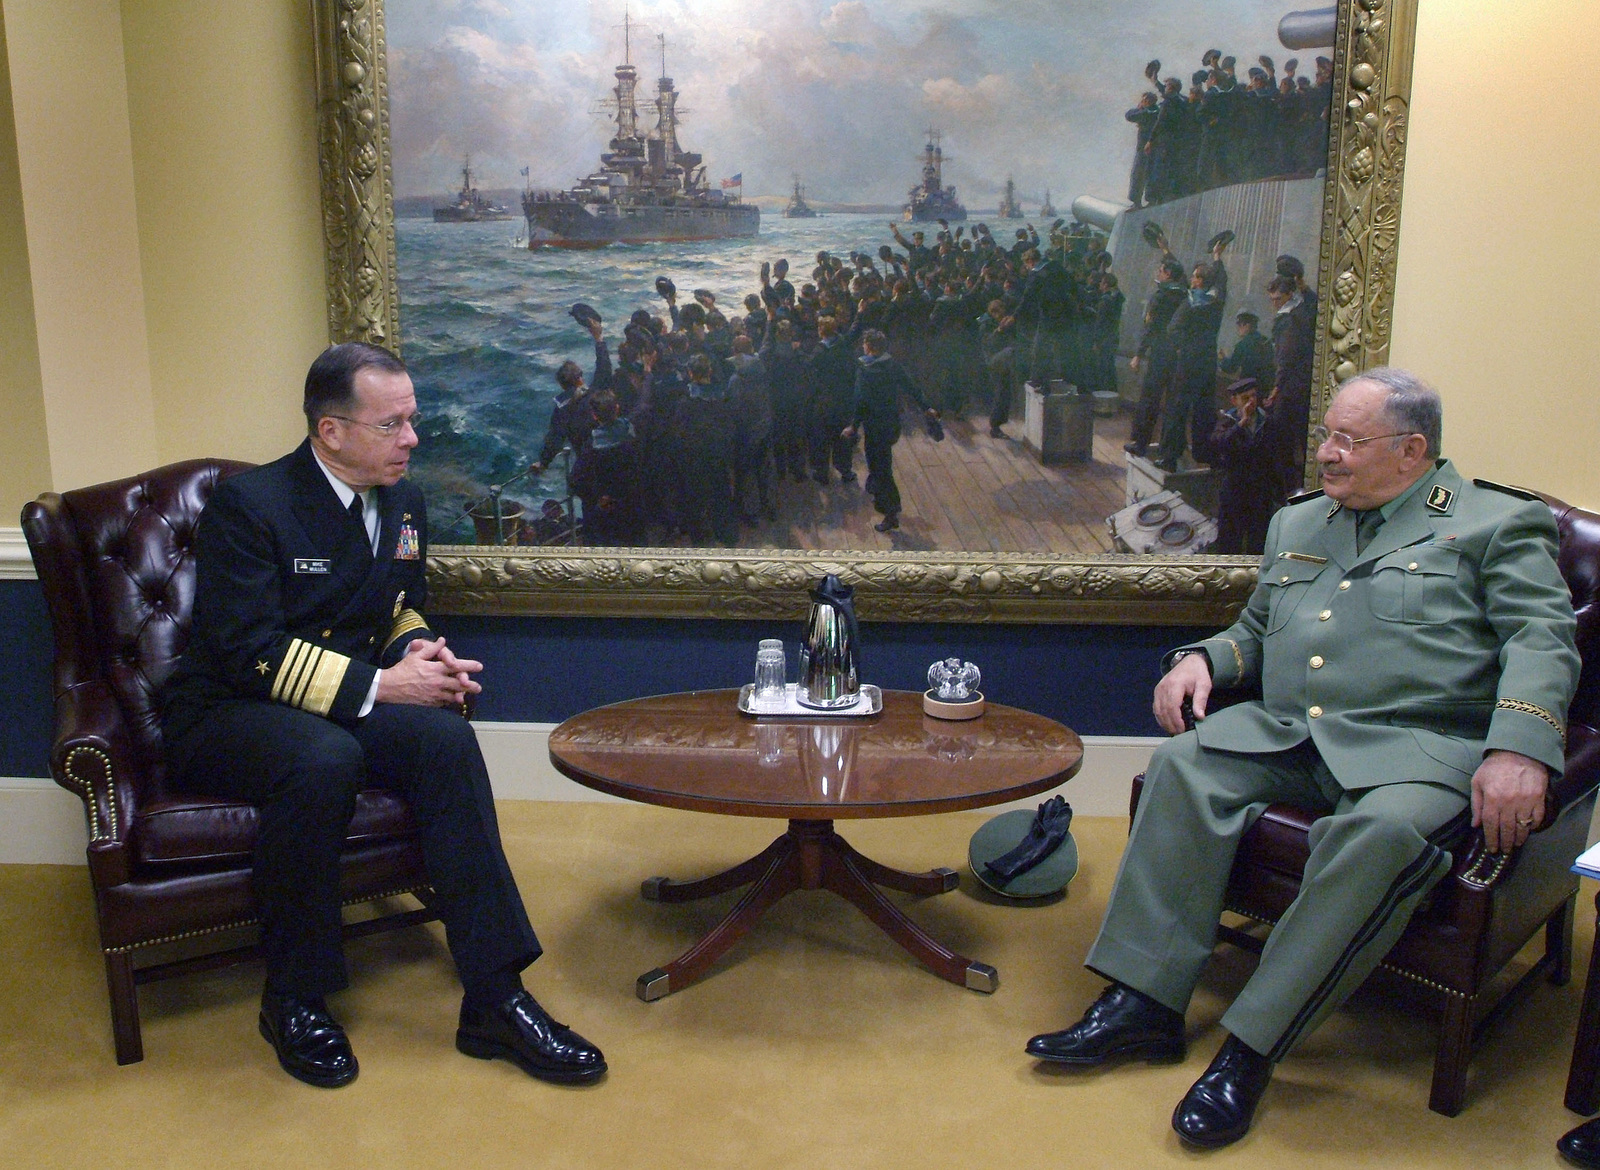 CHIEF of Naval Operations (CNO), US Navy (USN) Admiral (ADM) Michael G. Mullen (left), meets with Algerian CHIEF of STAFF, General (GEN) Ahmed Gaid-Salah, during his official visit to the Pentagon in Washington, District of Columbia (DC)